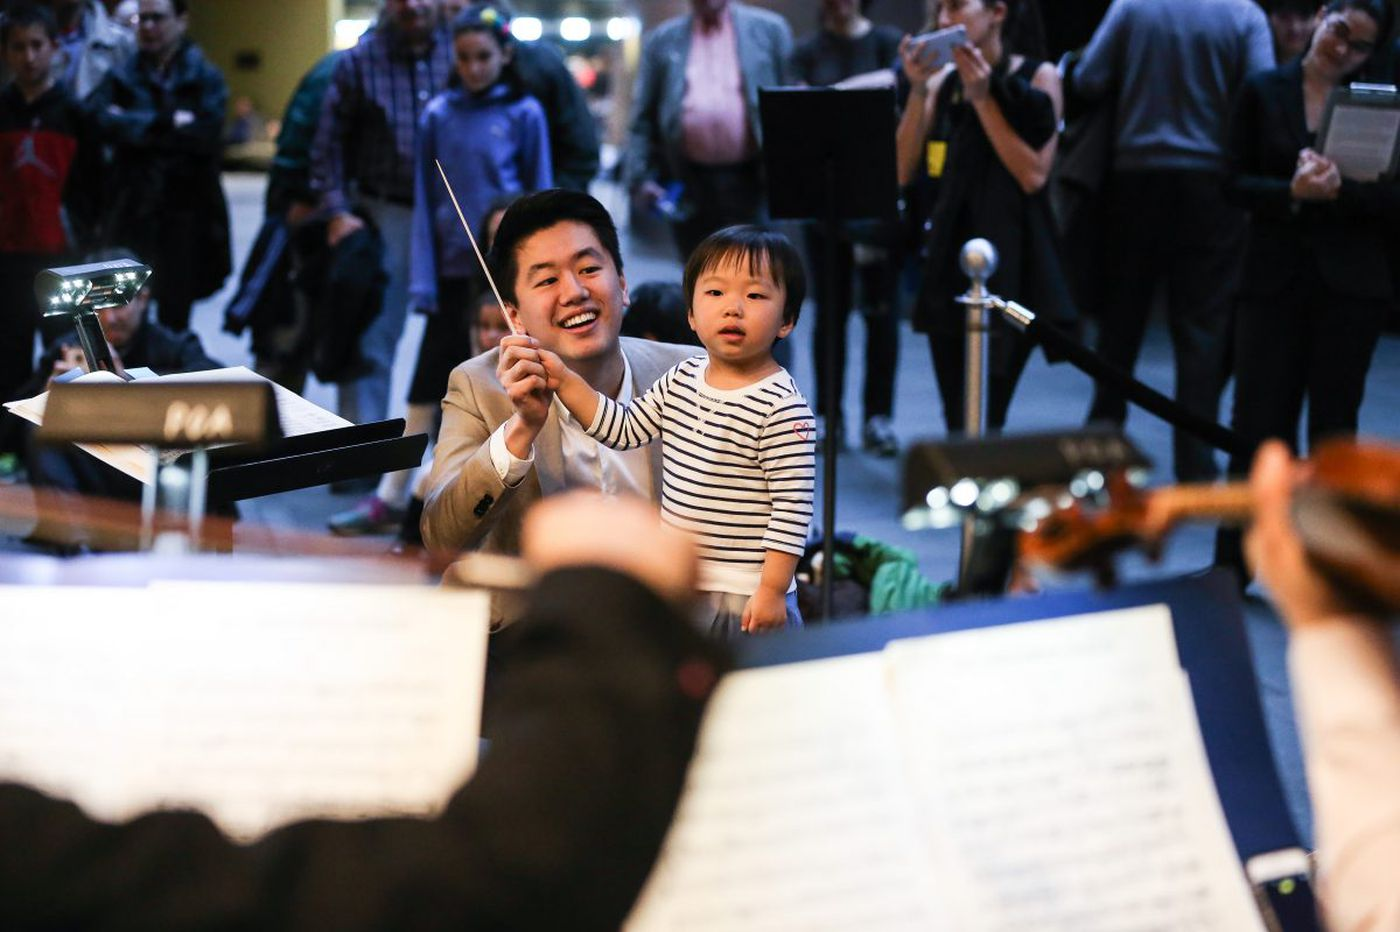 Philadelphia Orchestra adds free concert